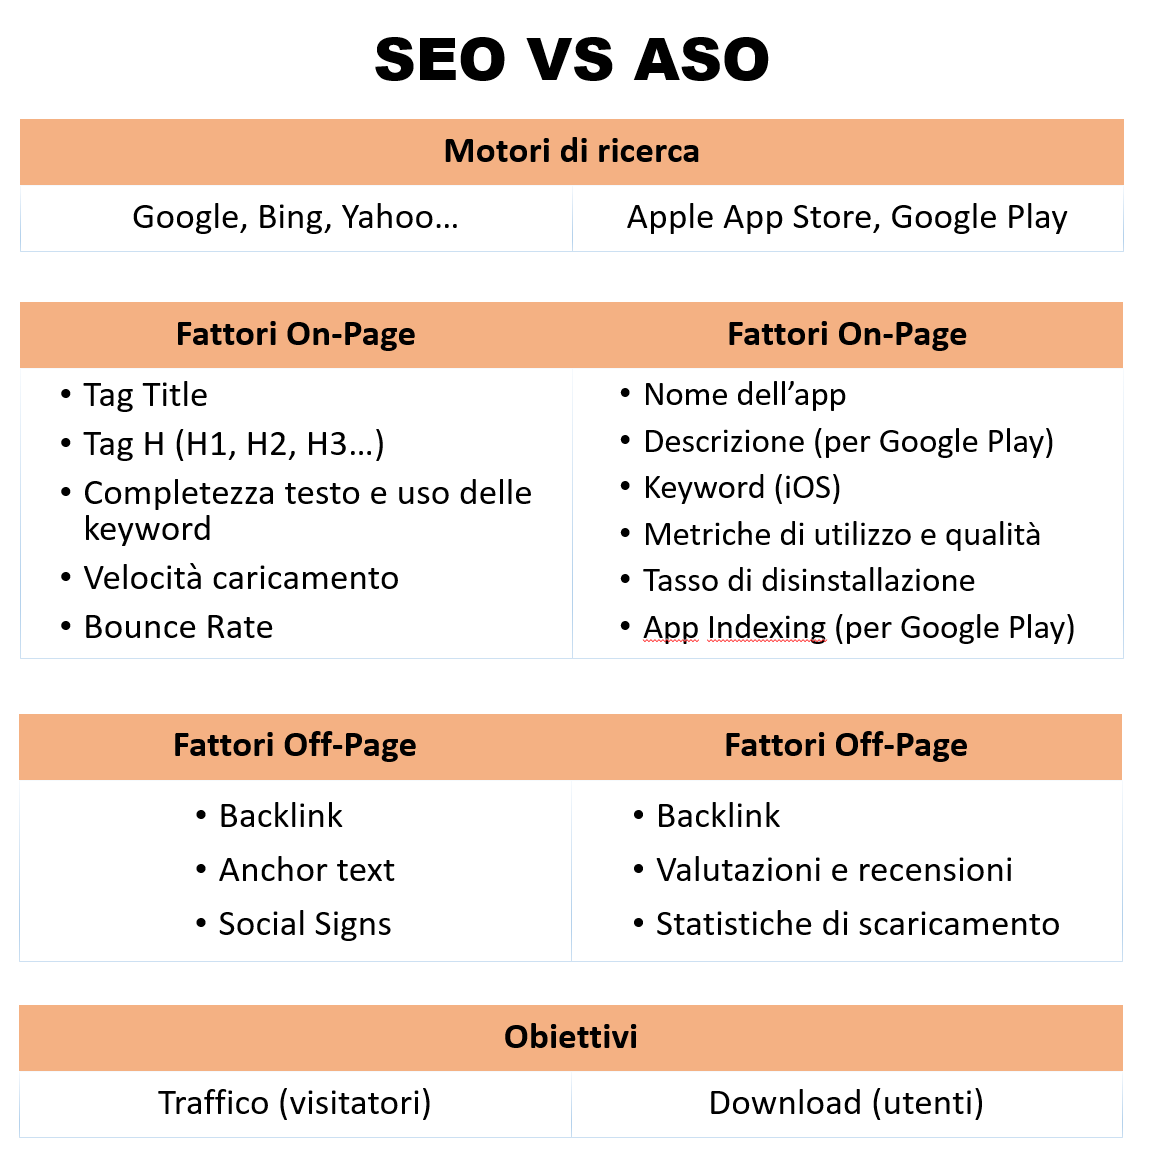 differenze fra seo e aso in tabella